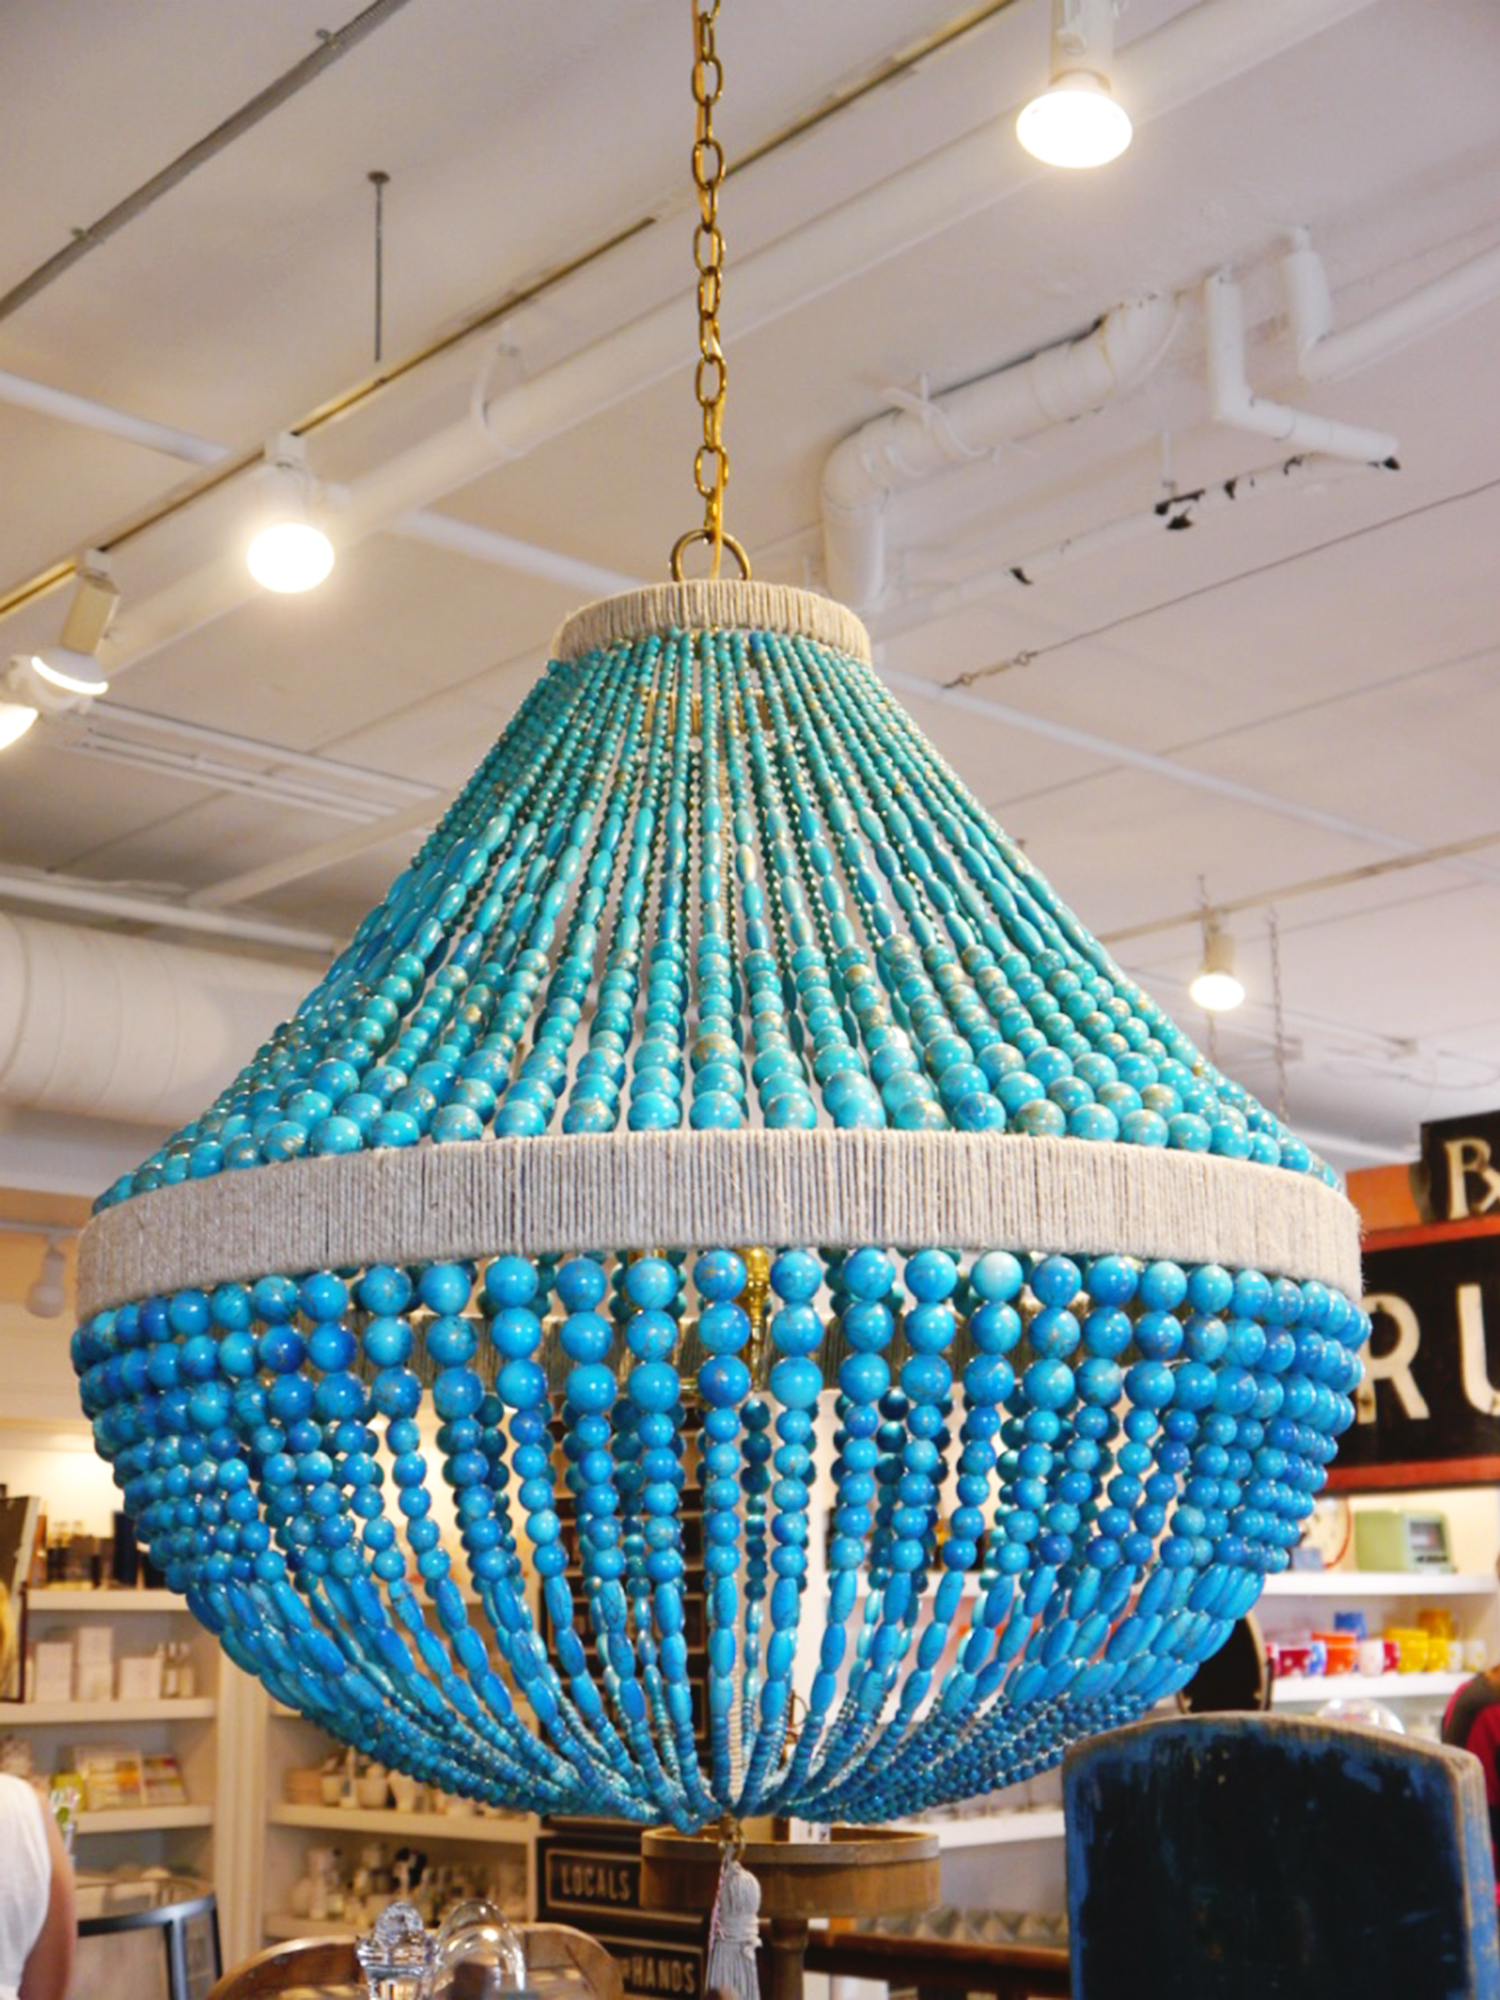 turqoise_chandelier_seagrove_res72.jpg